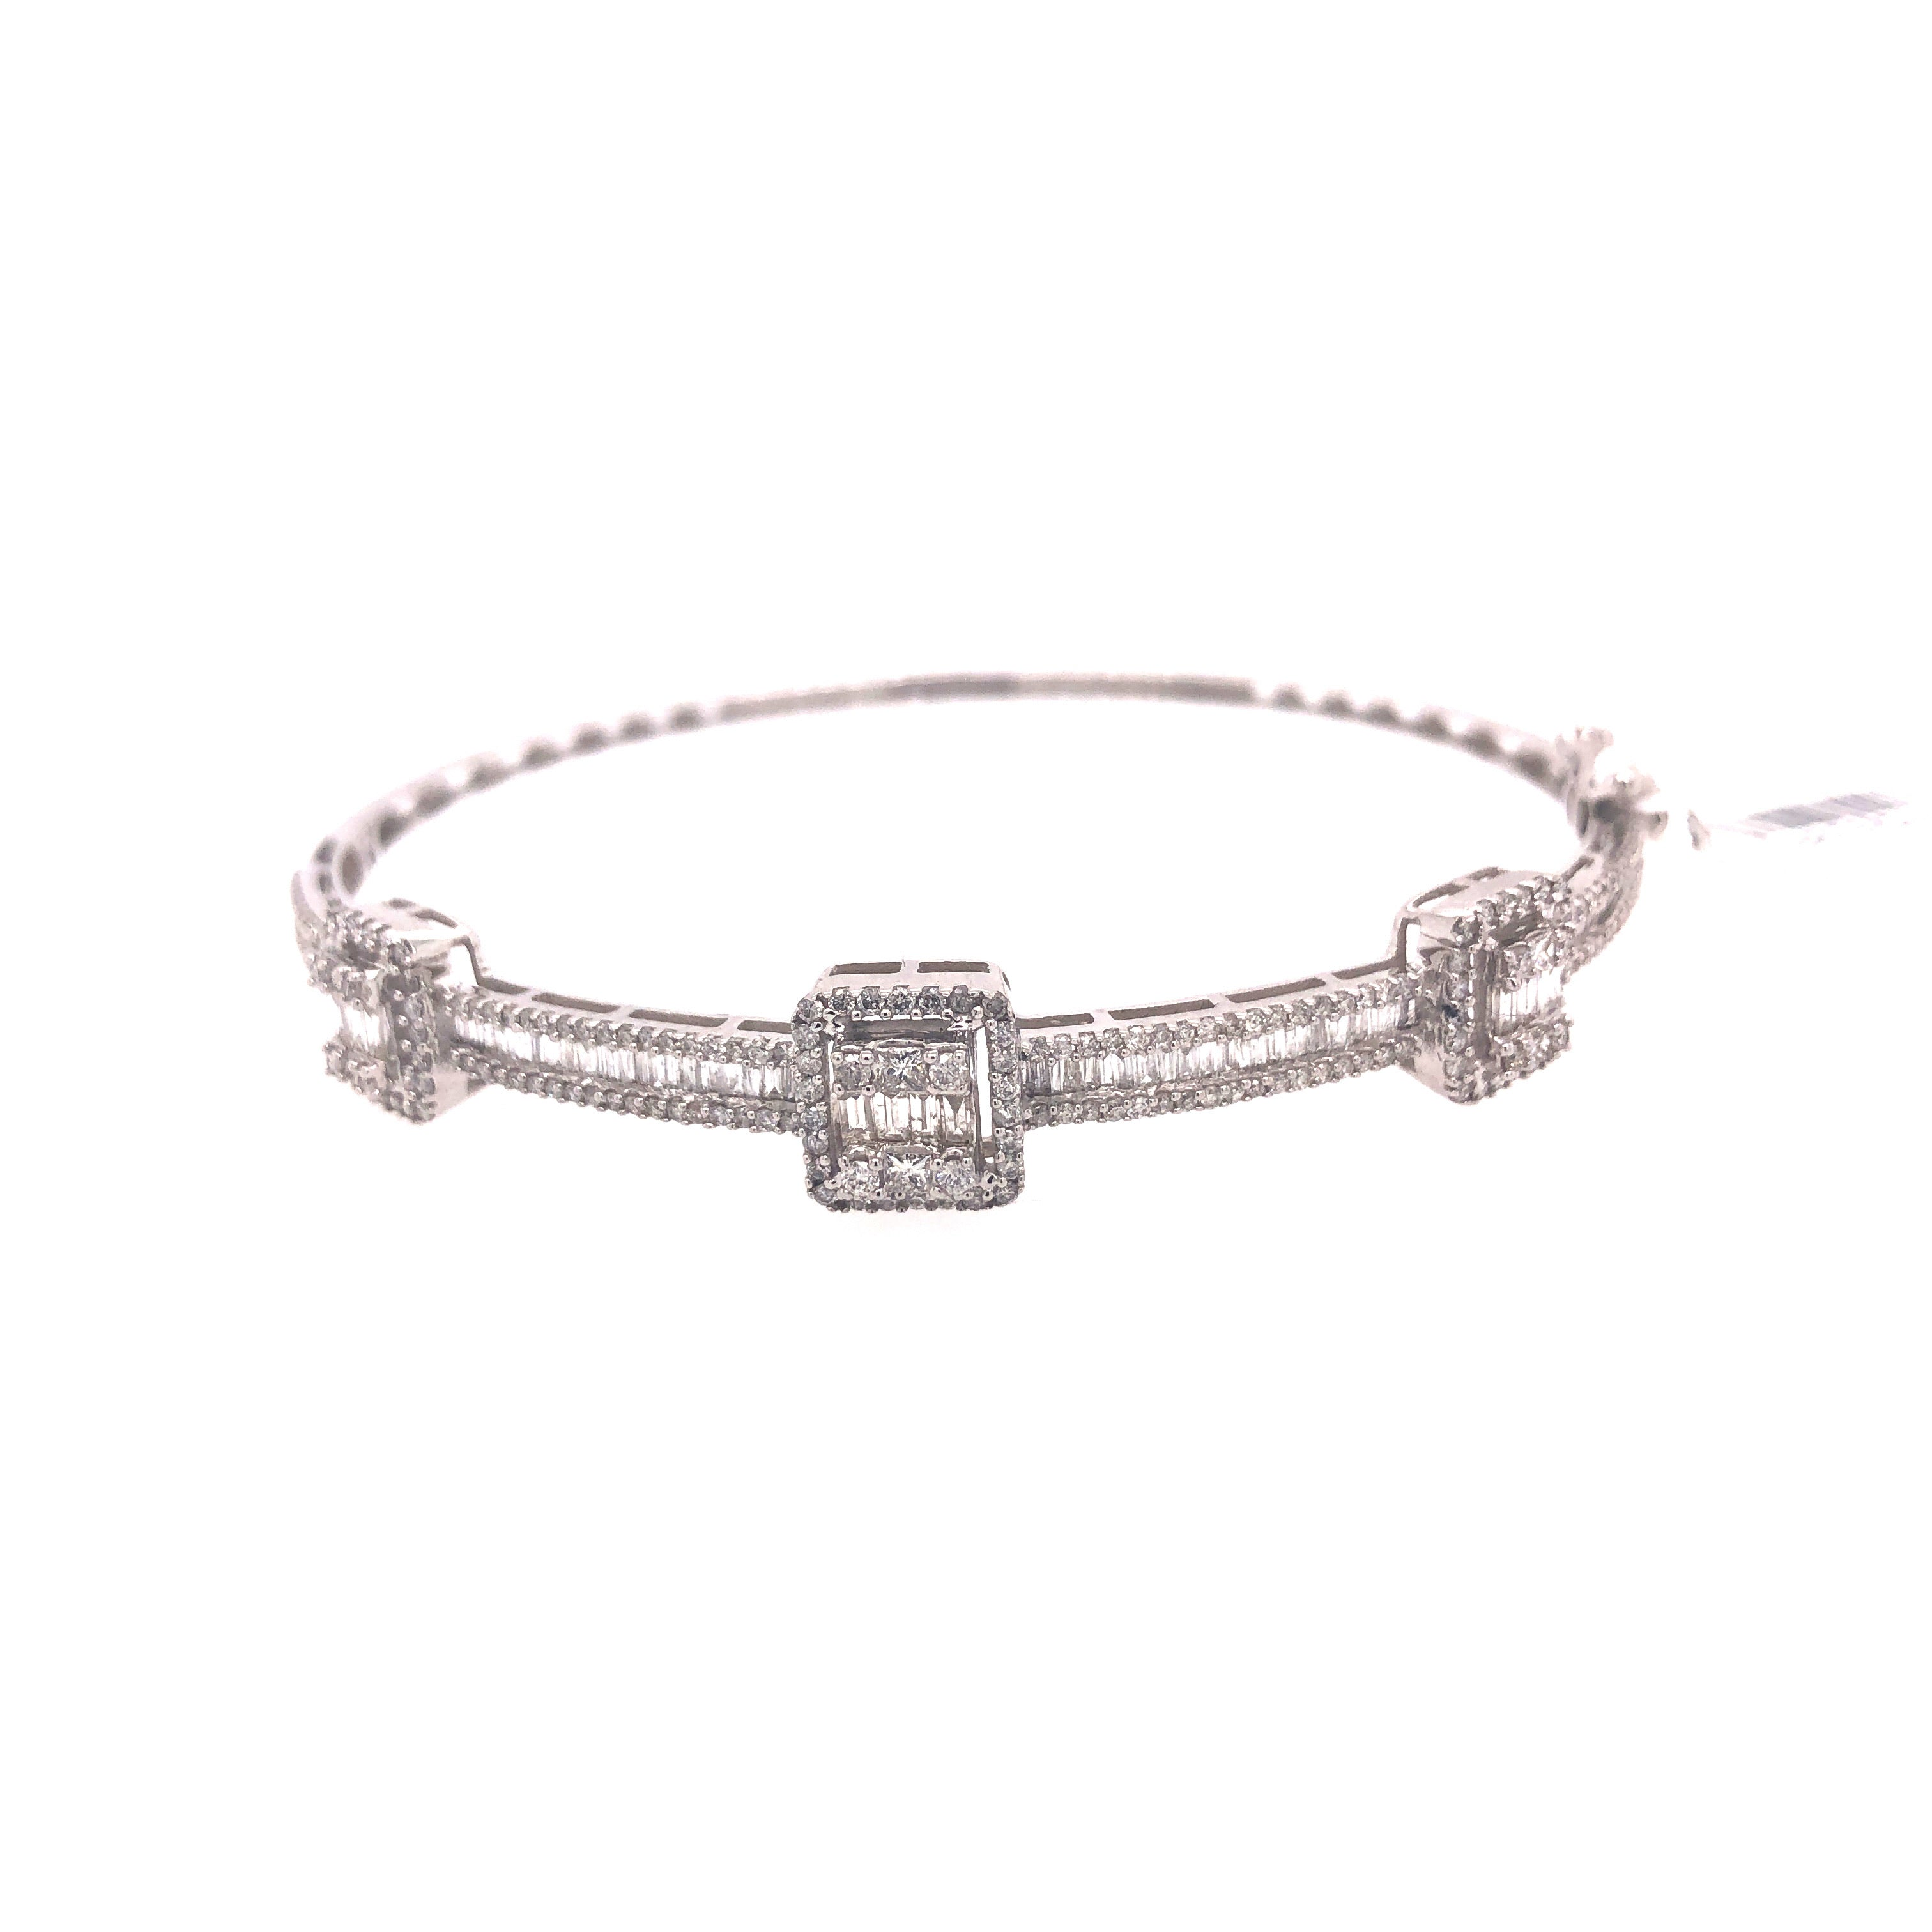 Halo Baguette Diamond Bangle